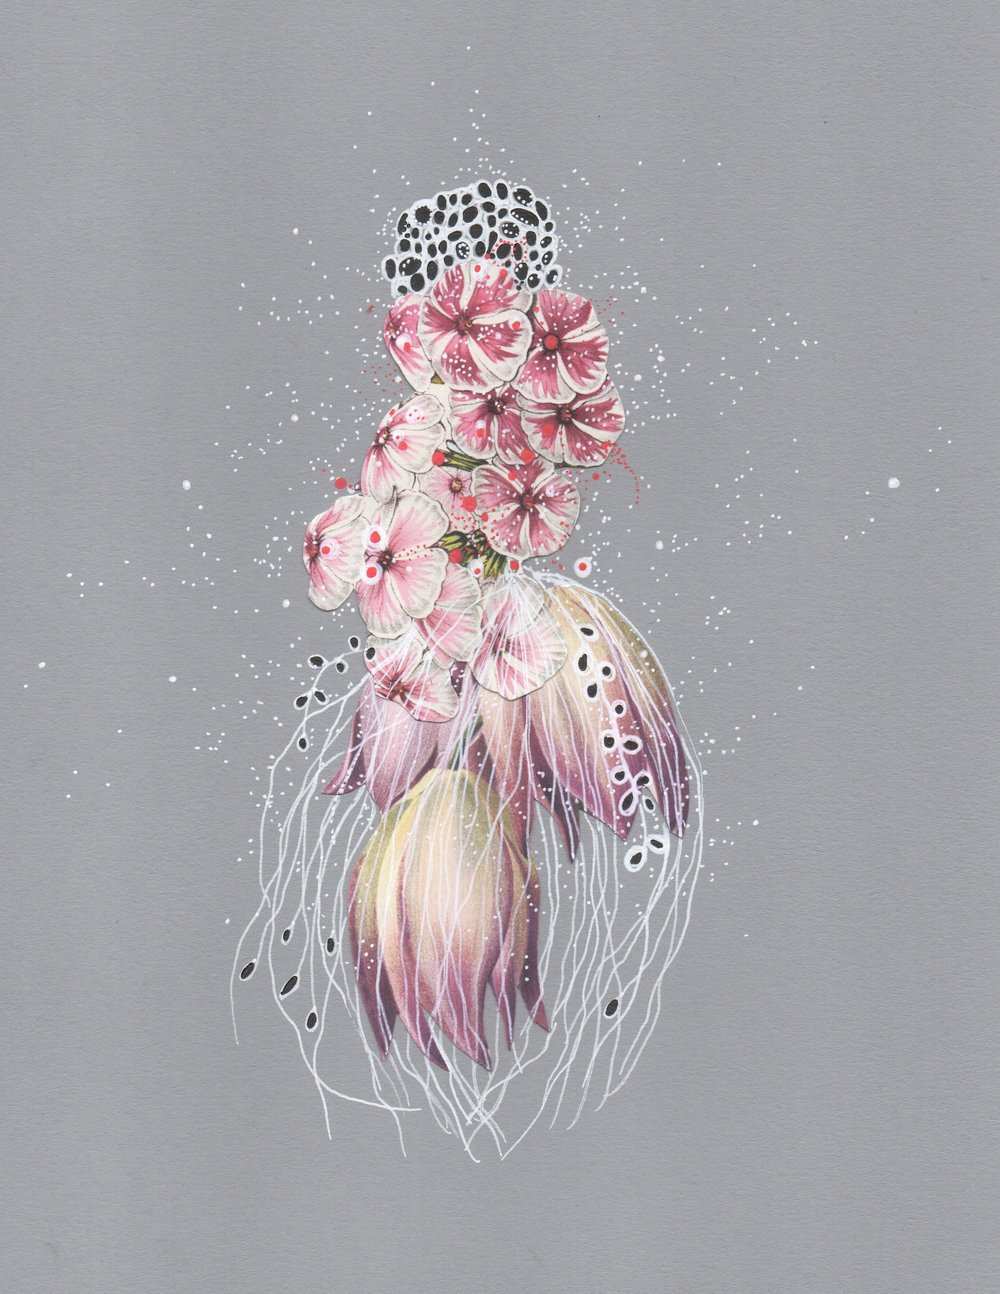 Snow Phlox Jellyfish, pen, ink & collage by Jenny Brown